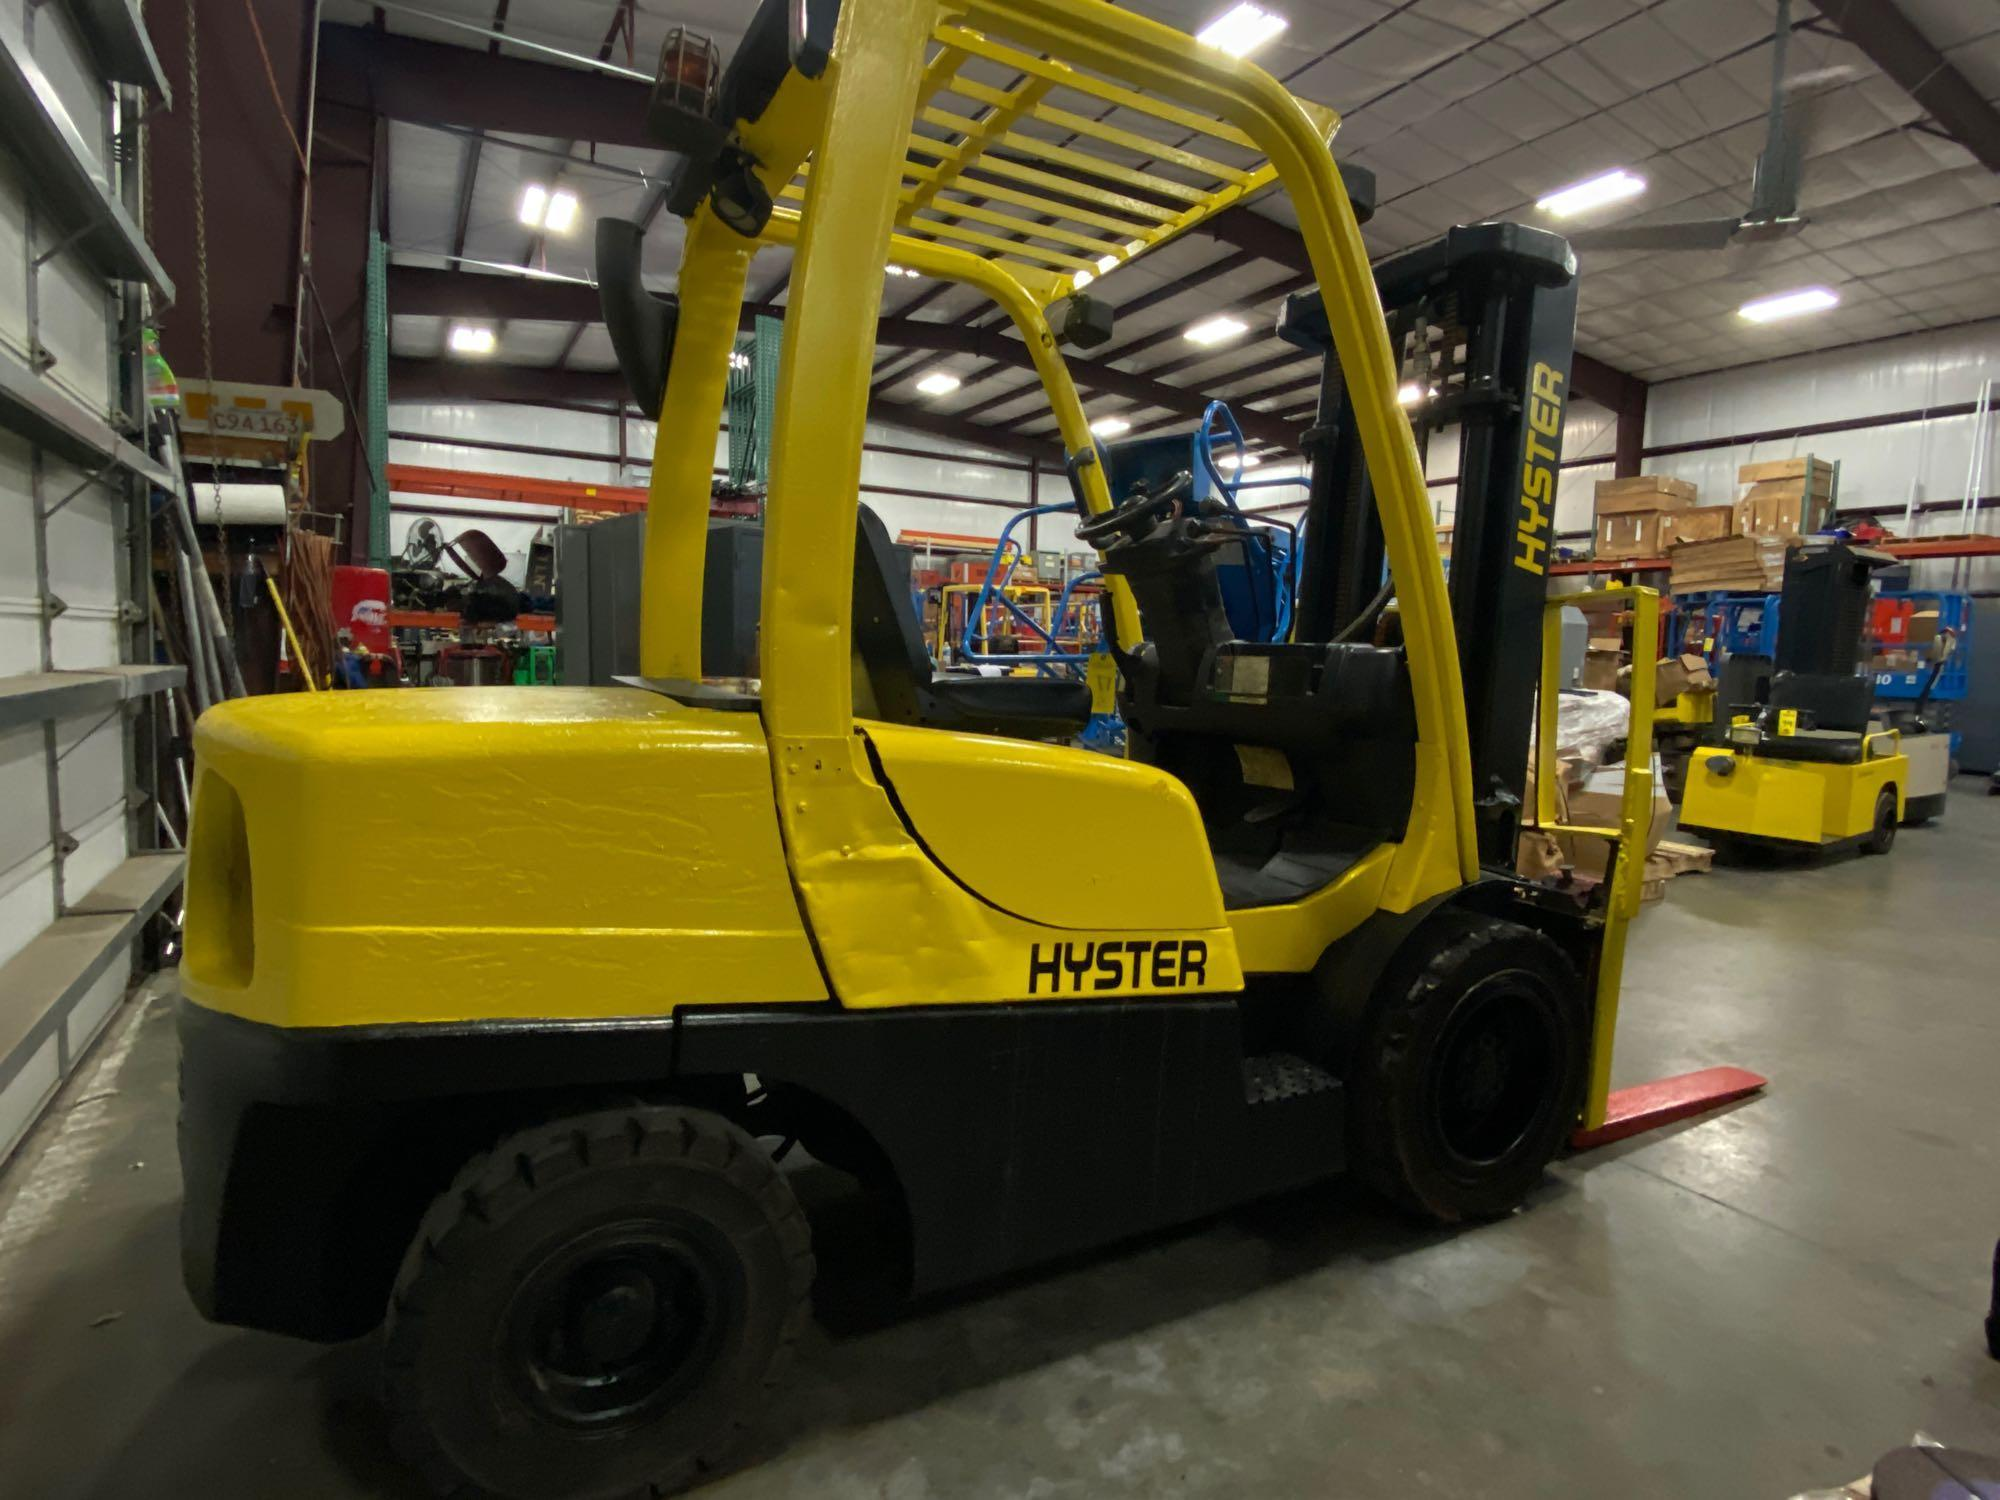 """HYSTER H70FT FORKLIFT, APPROX. 7,000 LB CAPACITY, 181.9"""" HEIGHT CAP, TILT, RUNS AND OPERATES - Image 3 of 10"""